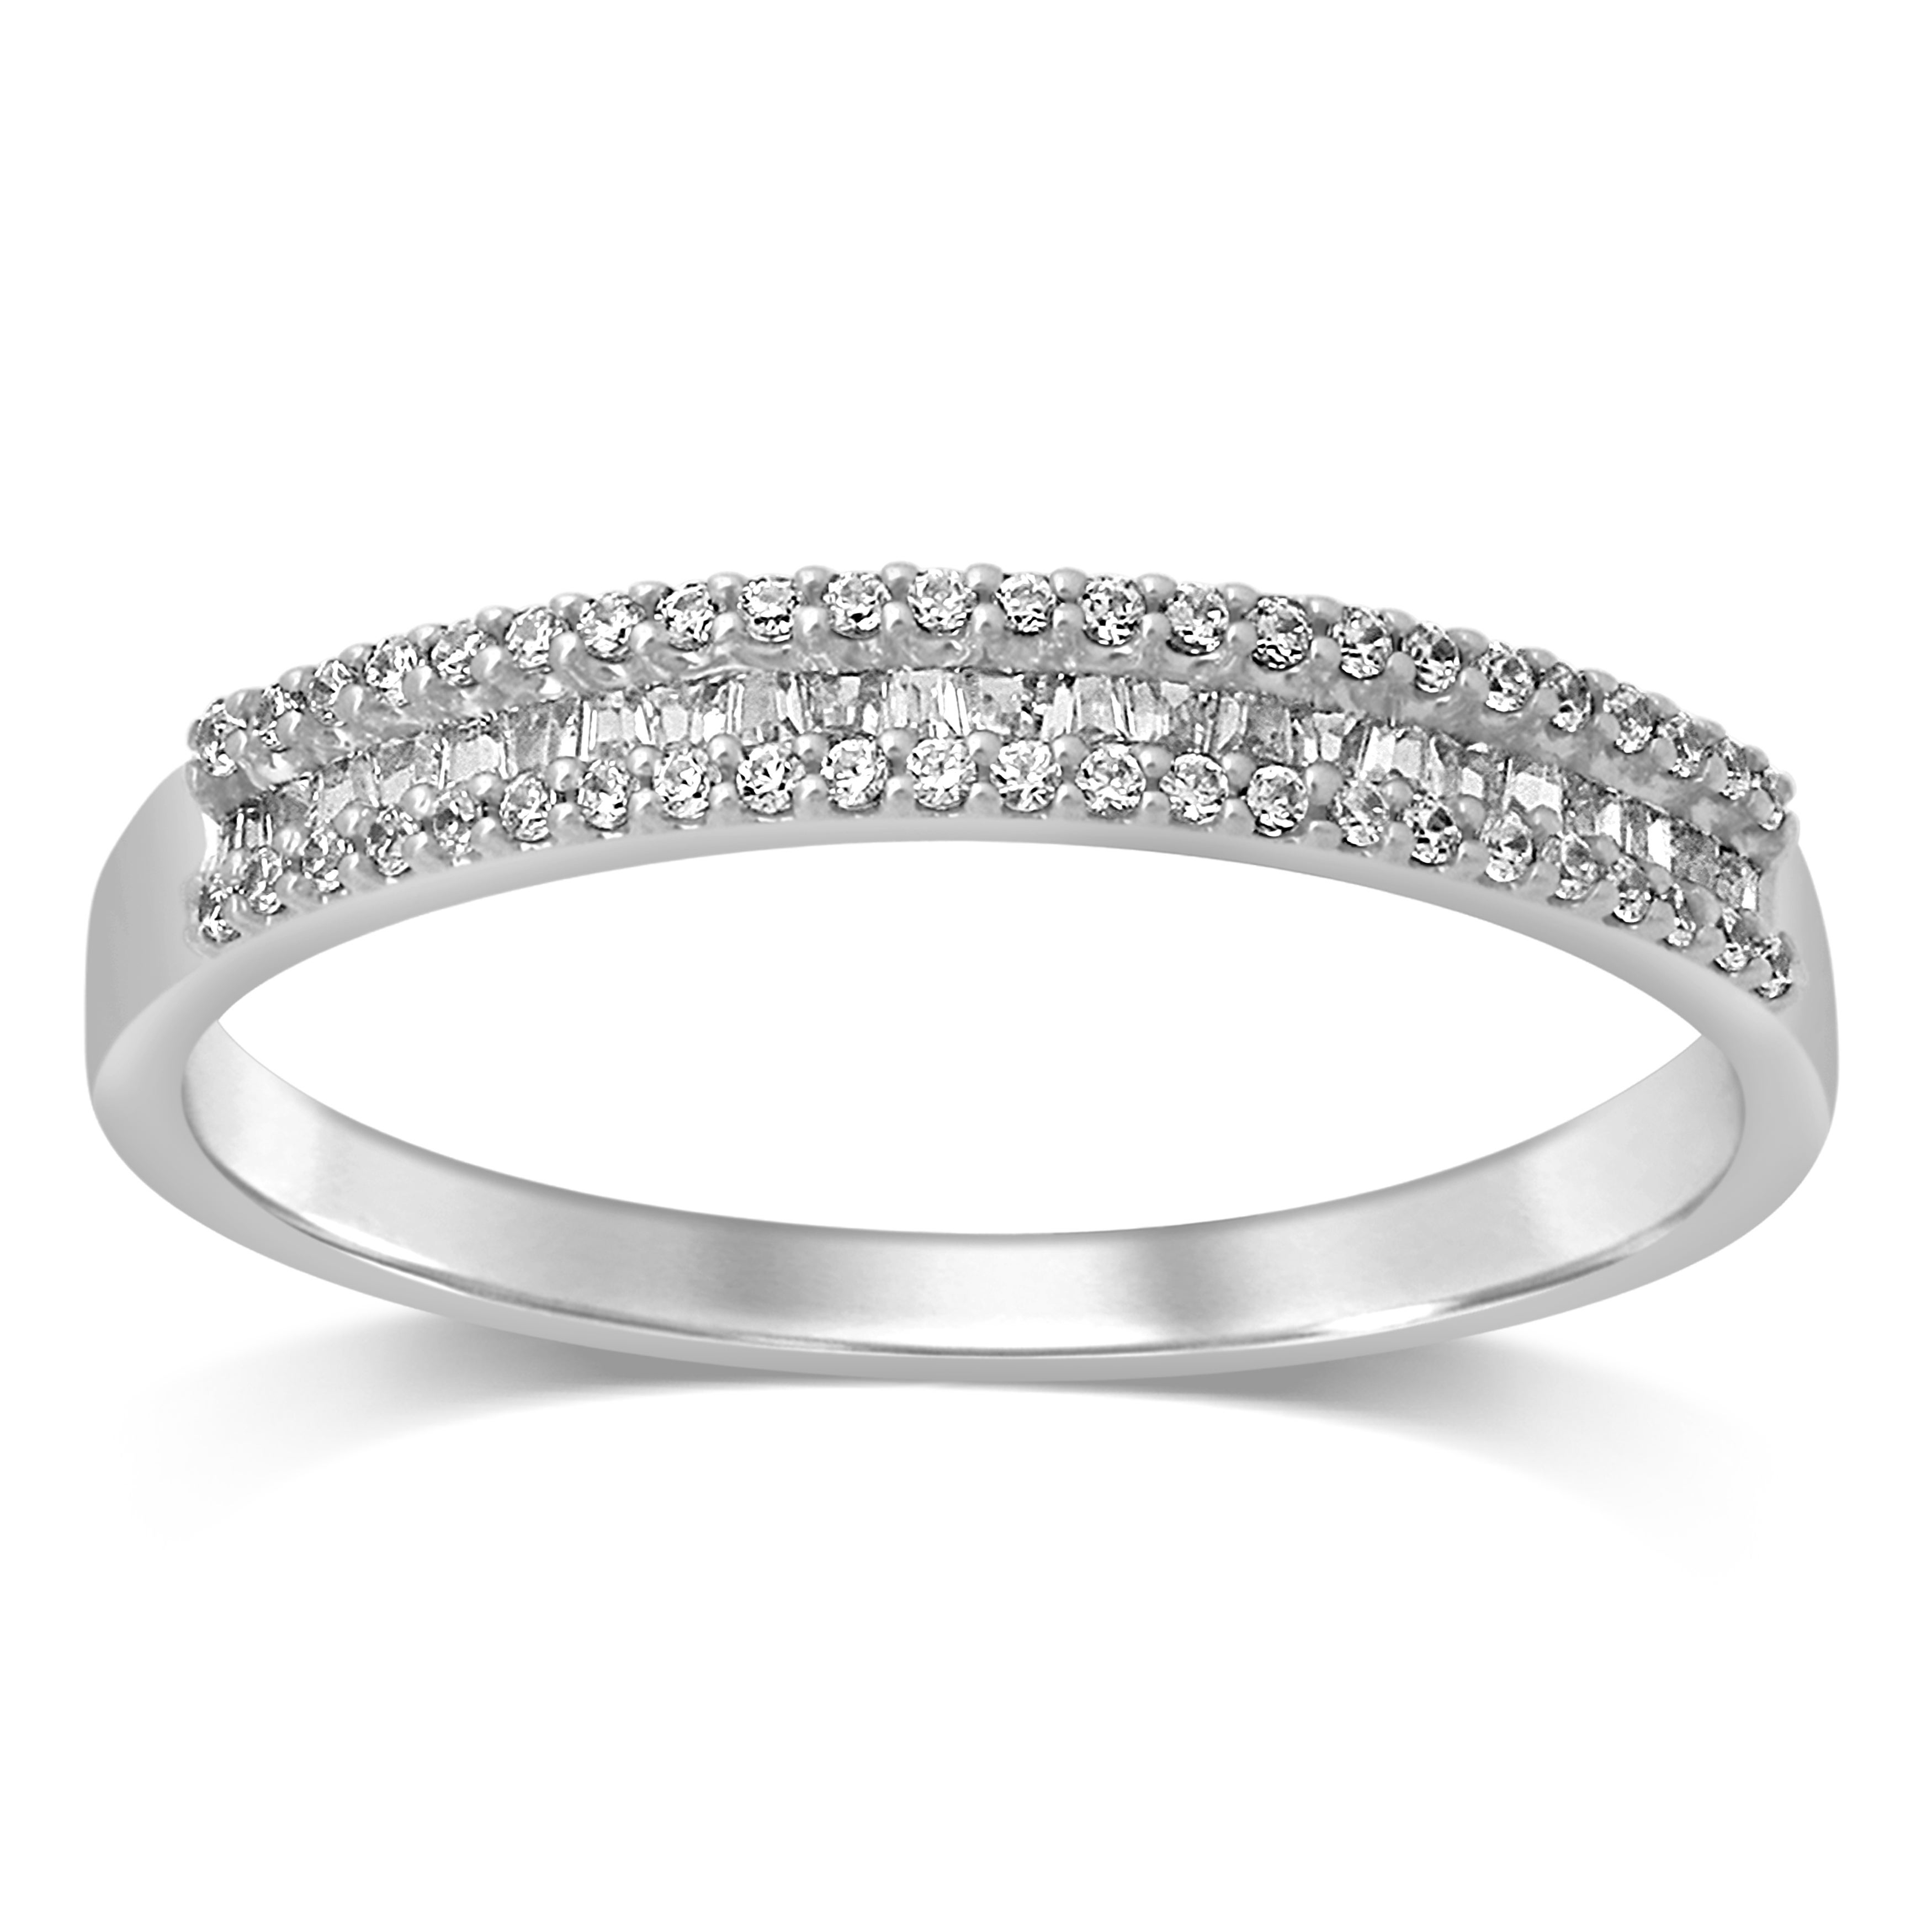 Unending Love 14K Gold 1/4 Ctw Round & Baguette Diamond Anniversary Band Intended For Most Recently Released Baguette Diamond Anniversary Bands In White Gold (View 24 of 25)